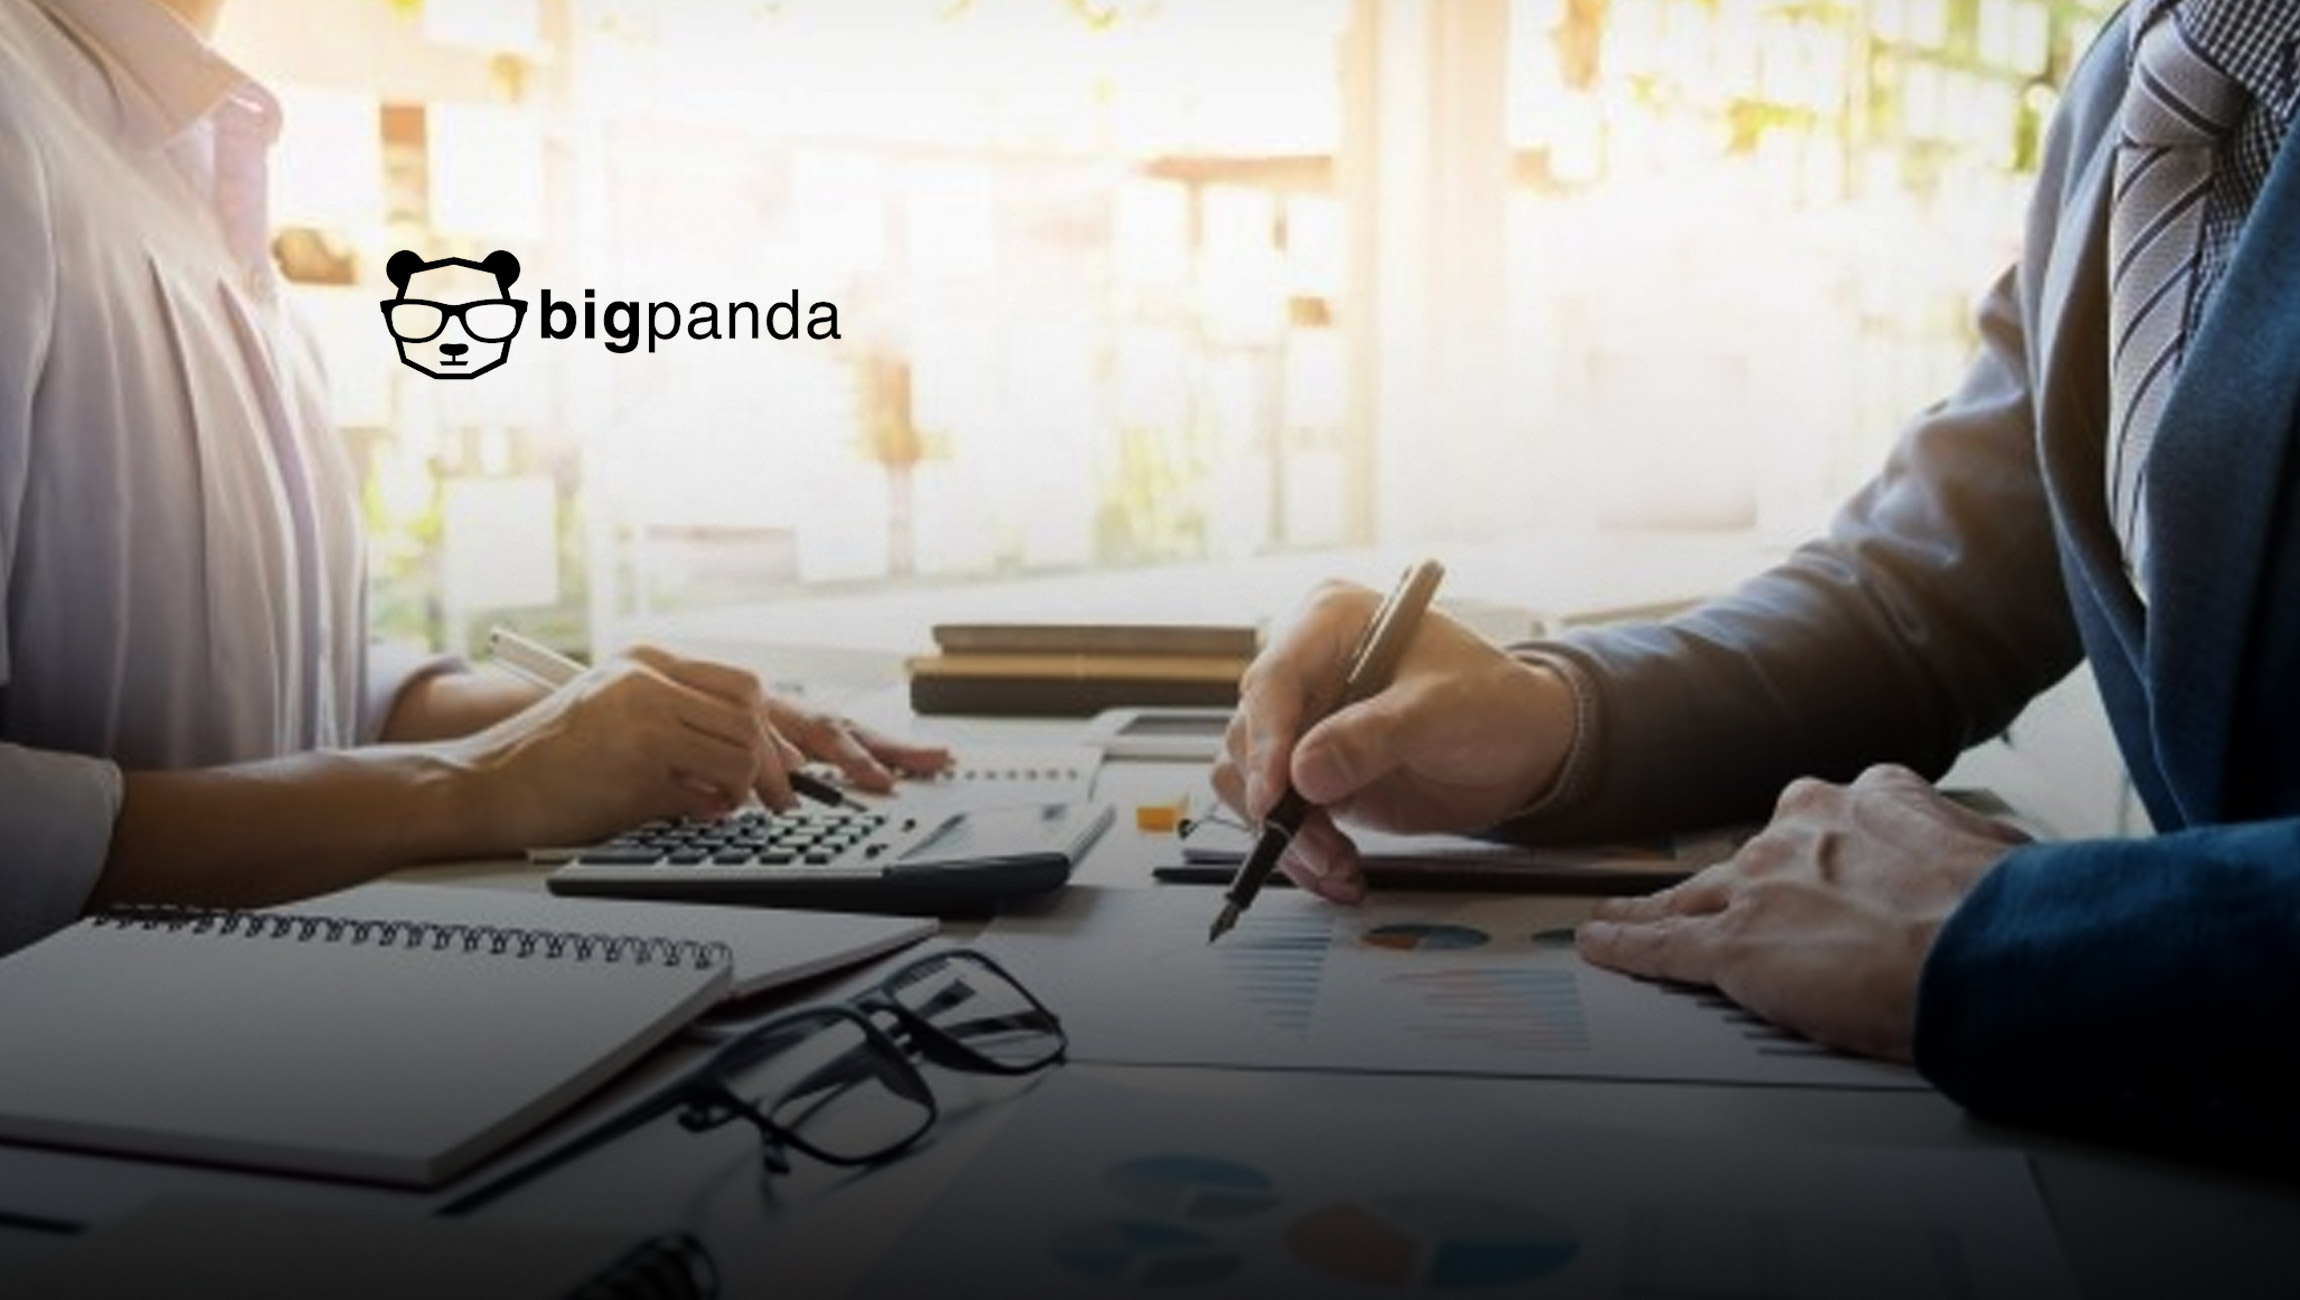 According to New Survey by BigPanda, Inc Nearly Half of IT Ops Professionals Say Preventing and Resolving IT Outages Are Their Biggest Challenges